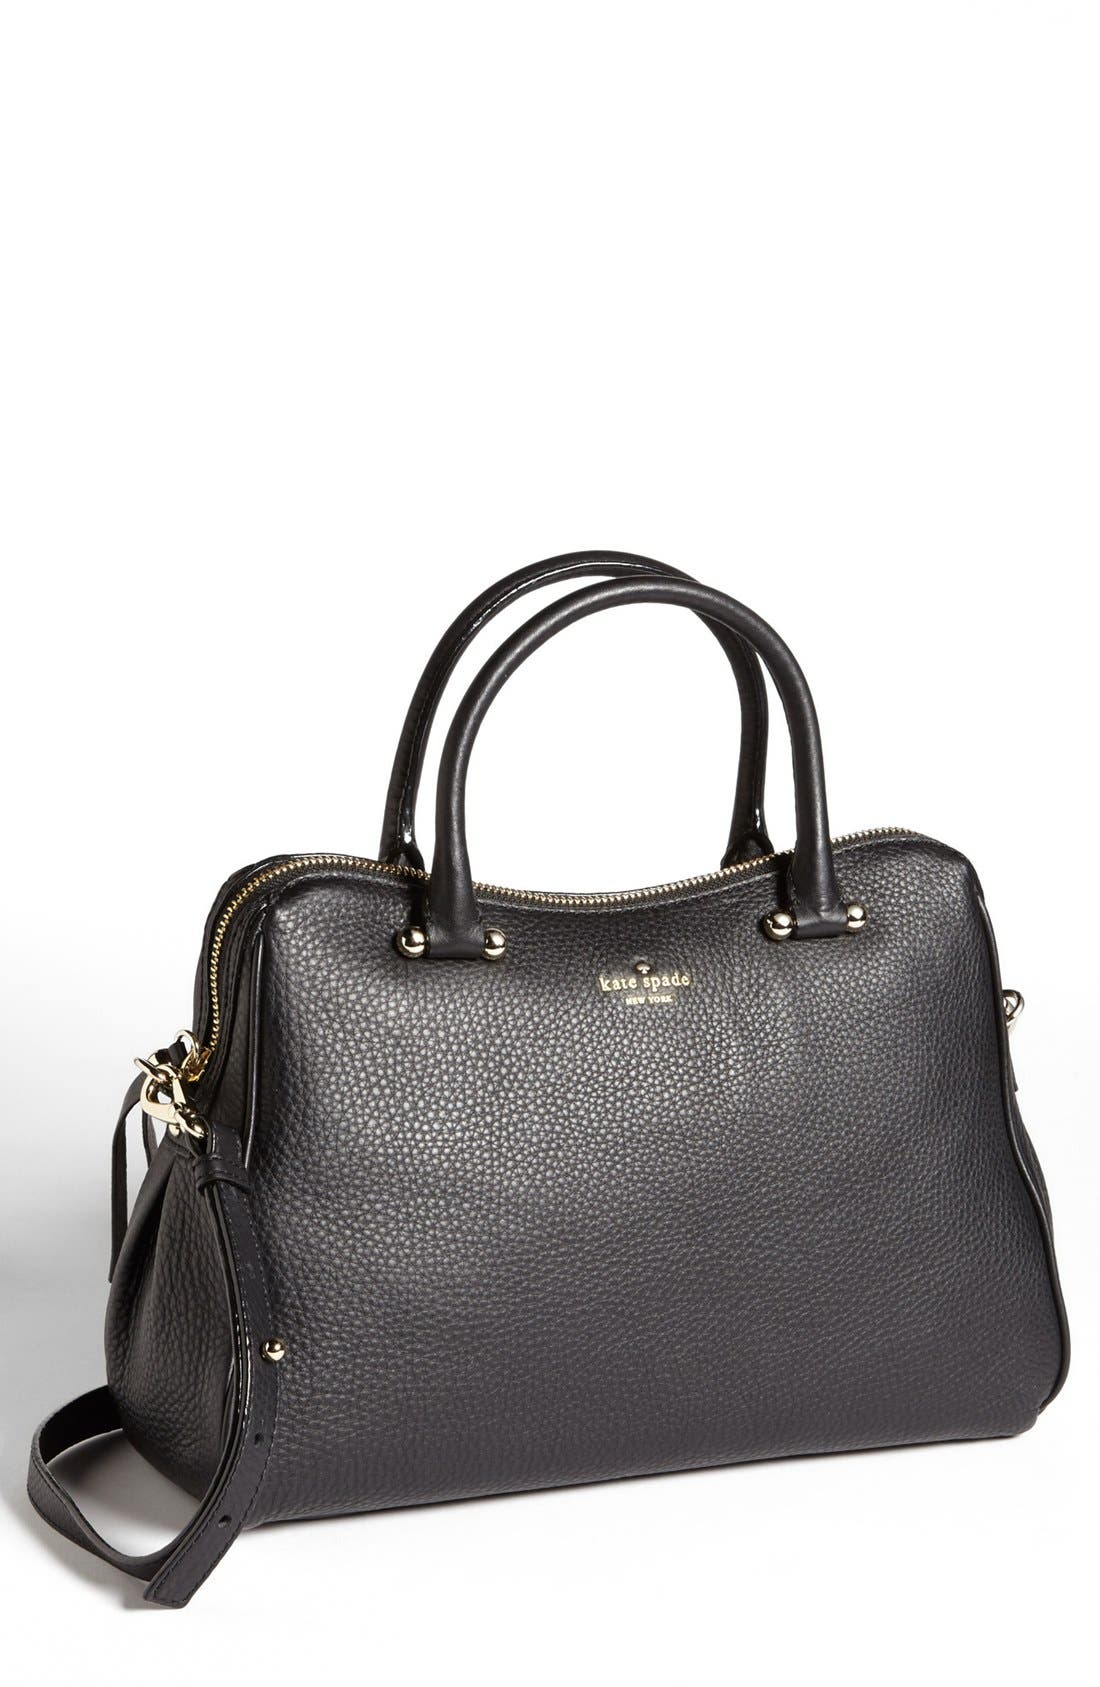 Main Image - kate spade new york 'charles street - audrey' leather satchel